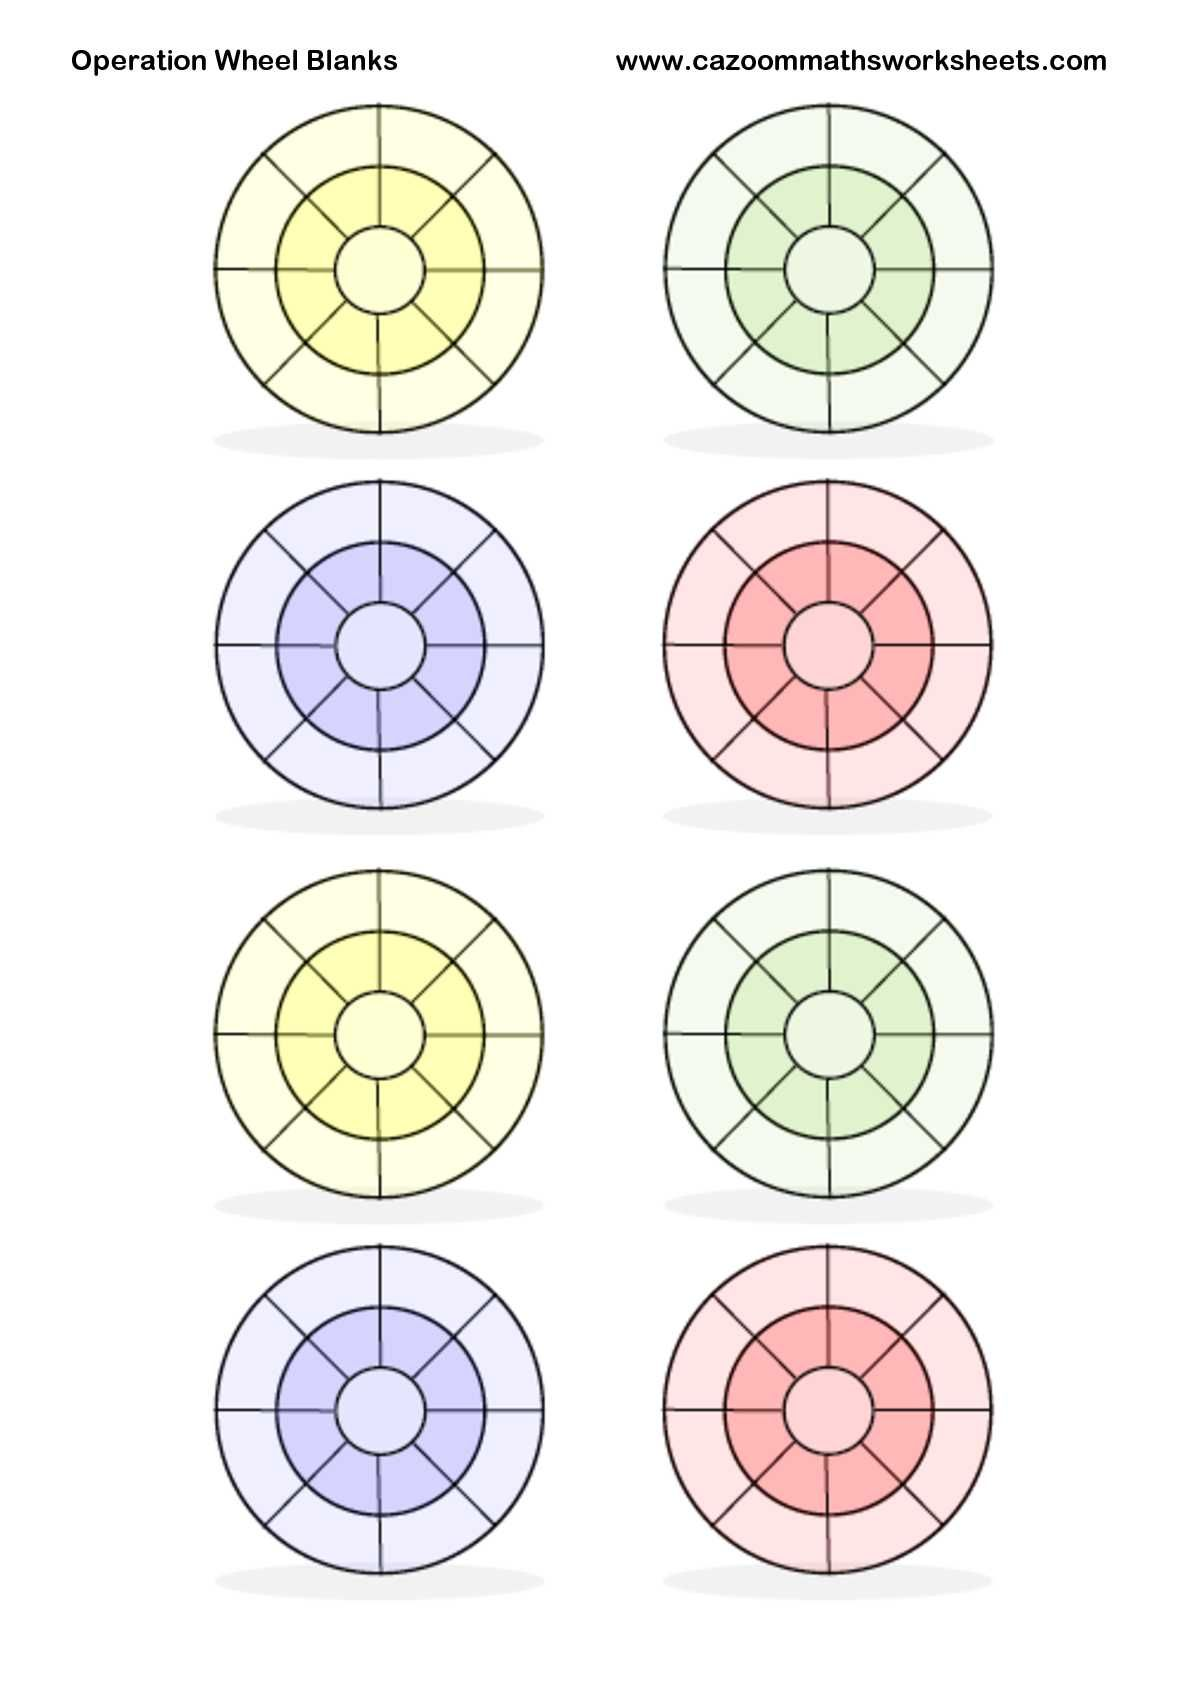 Operation Wheel Blanks for addition, subtraction or ...